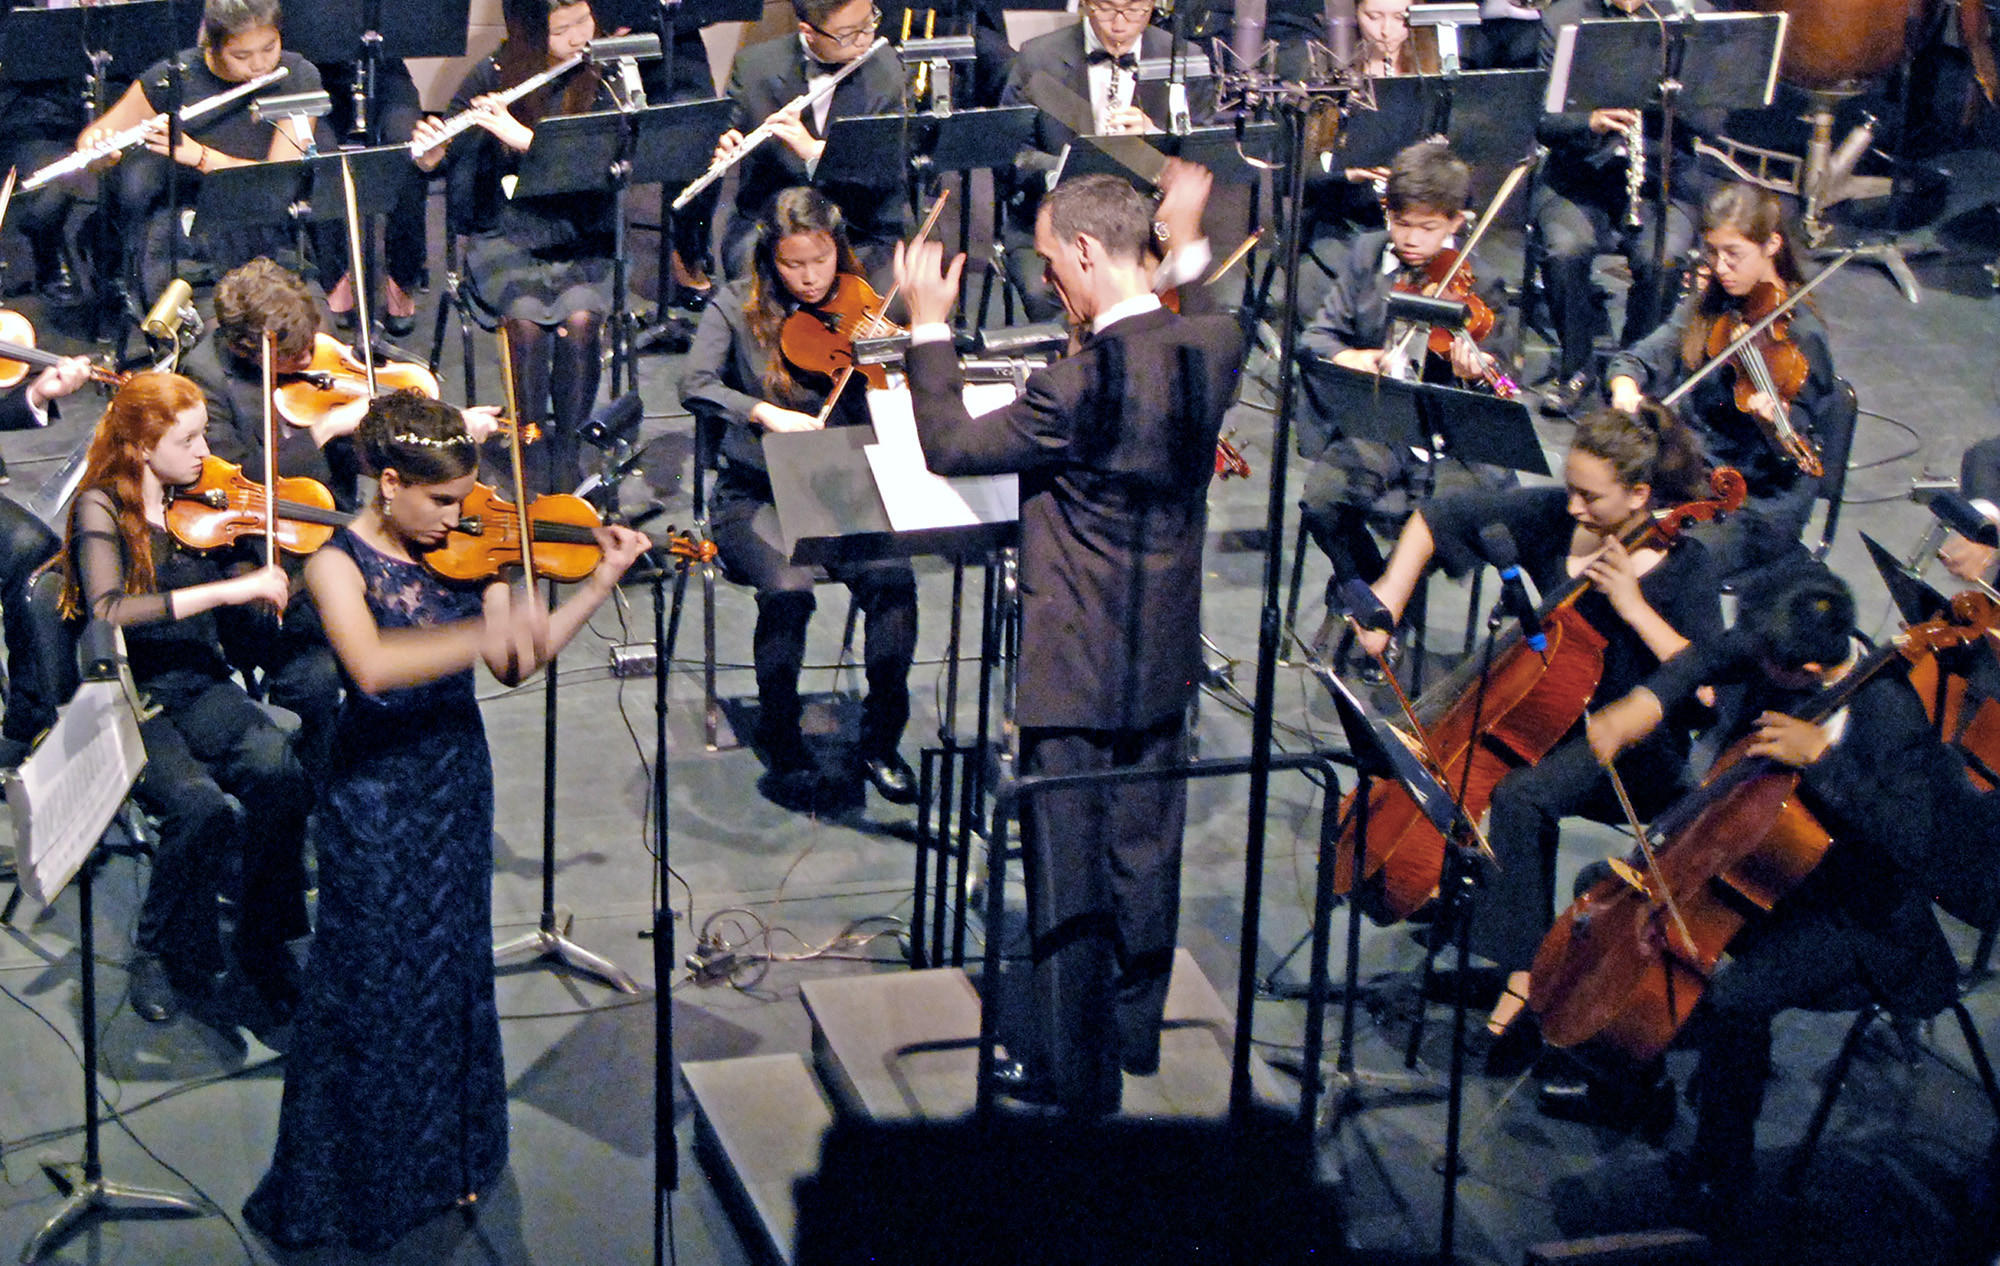 Concertmaster Sarah Worden, standing, performs Beethoven's Concerto for Violin while conductor Brad Keimach directs the Glendale Youth Orchestra at the Alex Theatre.